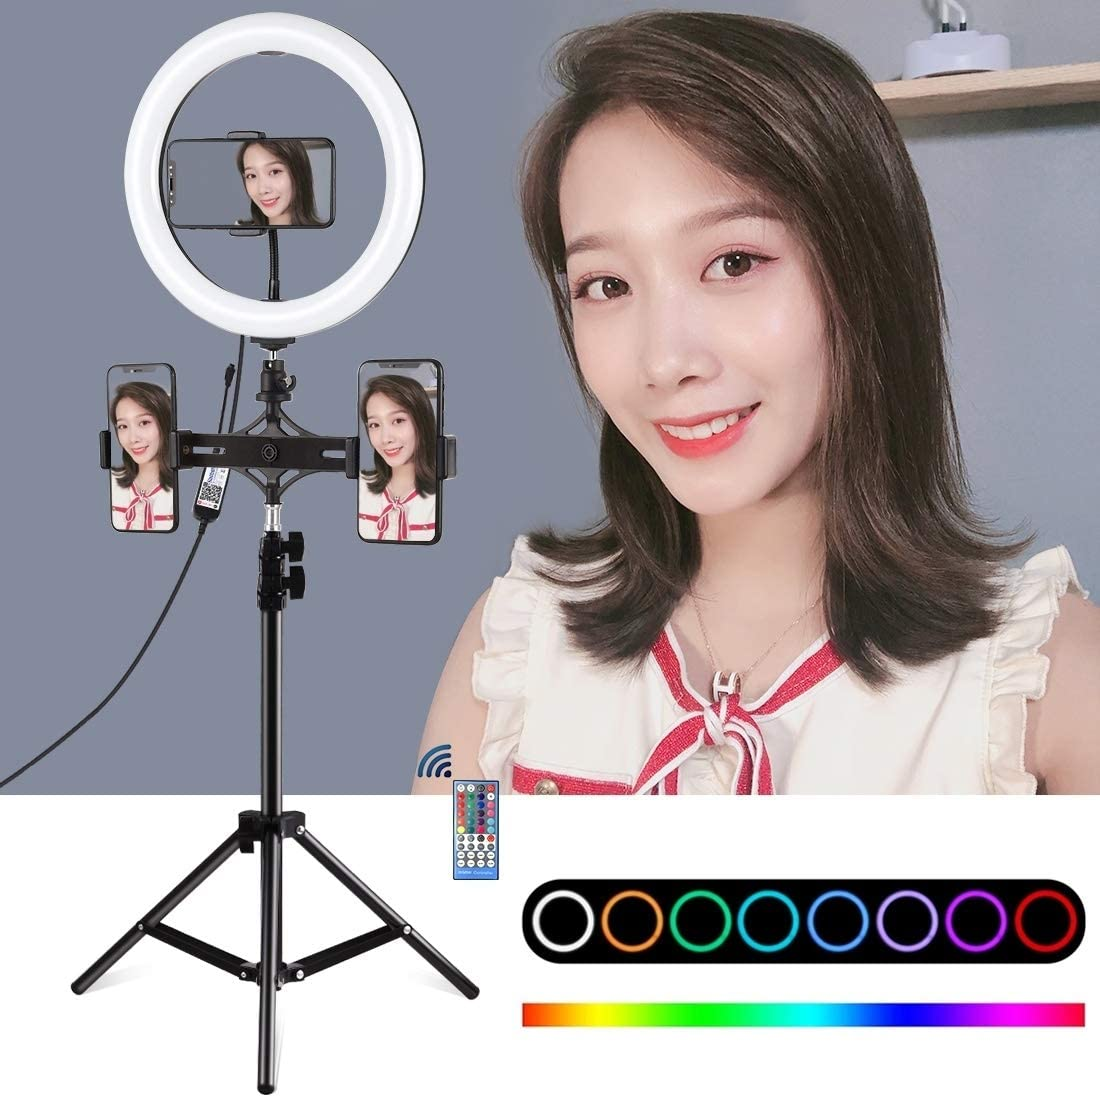 10 inch 26cm Curved Surface RGBW LED Ring Vlogging Video Light Live Broadcast Kits with Remote Control /& Phone Dual Phone Brackets Horizontal Holder WEIHONG Boutique Accessories PU419 Tripod Mount